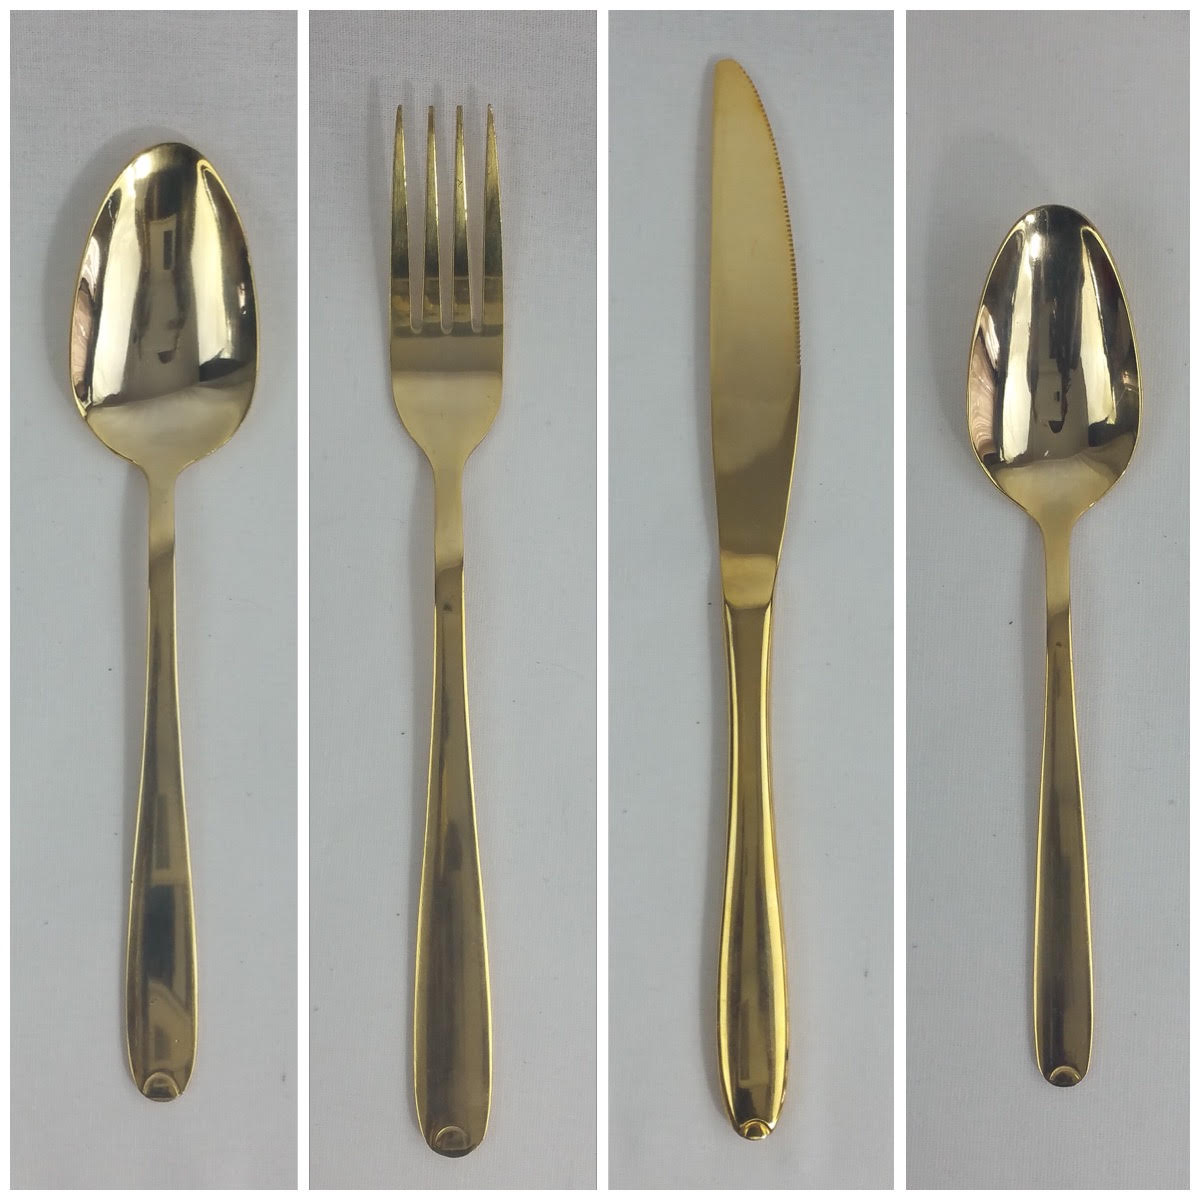 Gold cutlery. From £0.30p per piece.